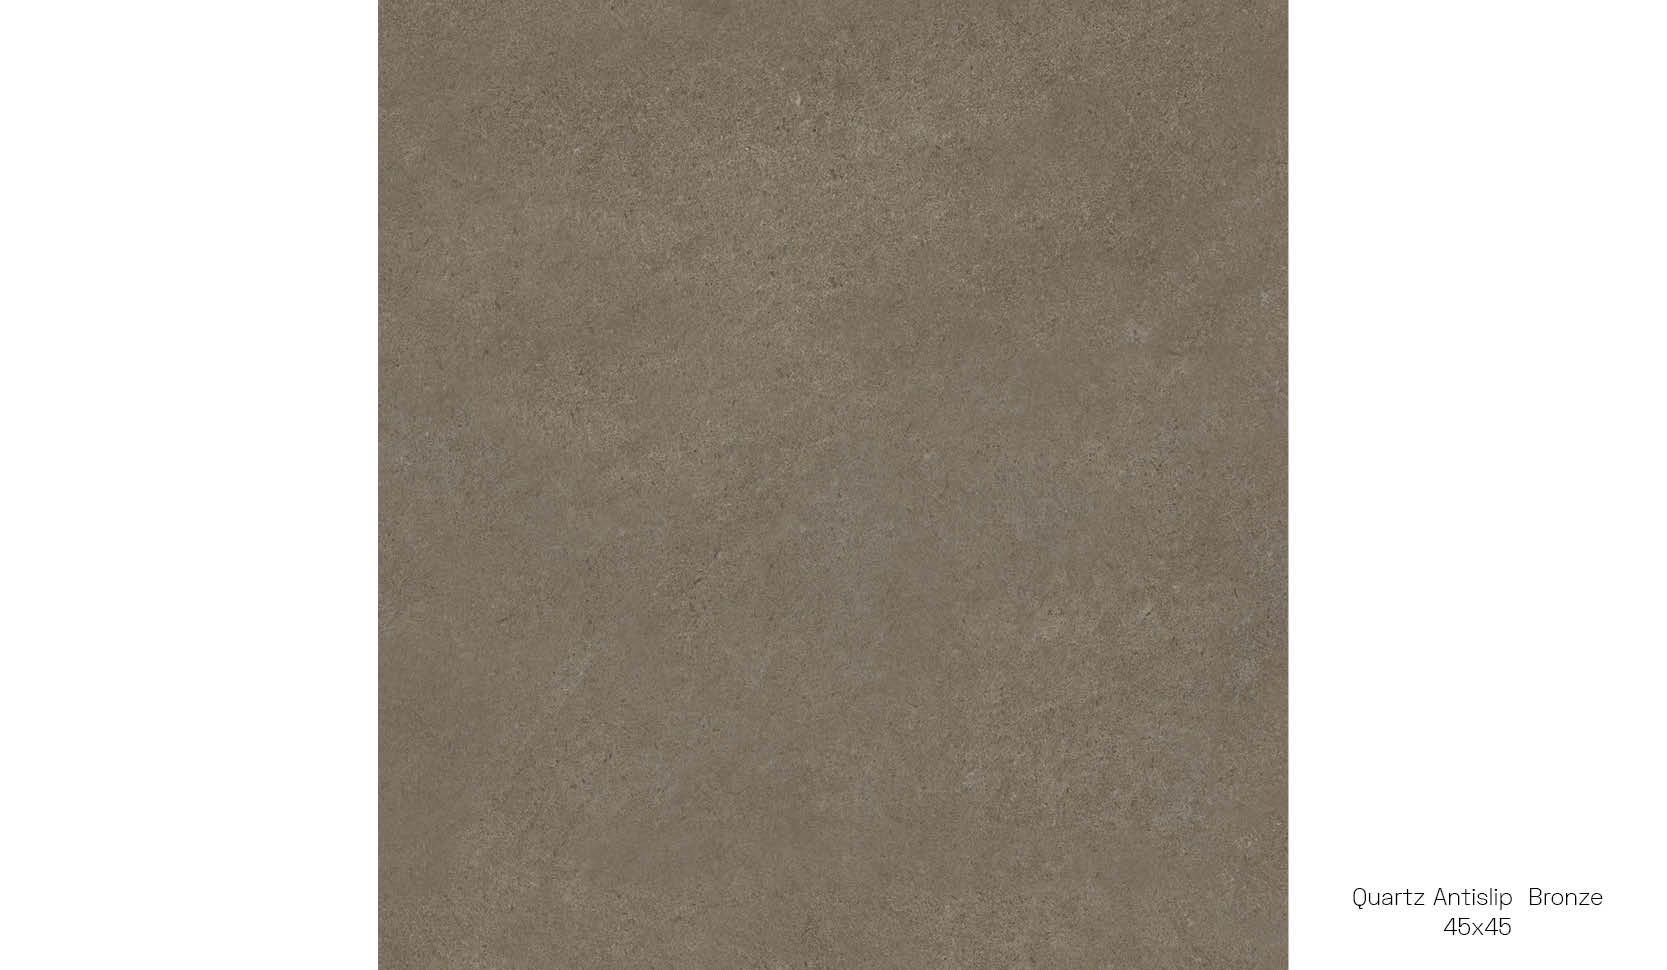 Quartz antislip bronze 45 x 45